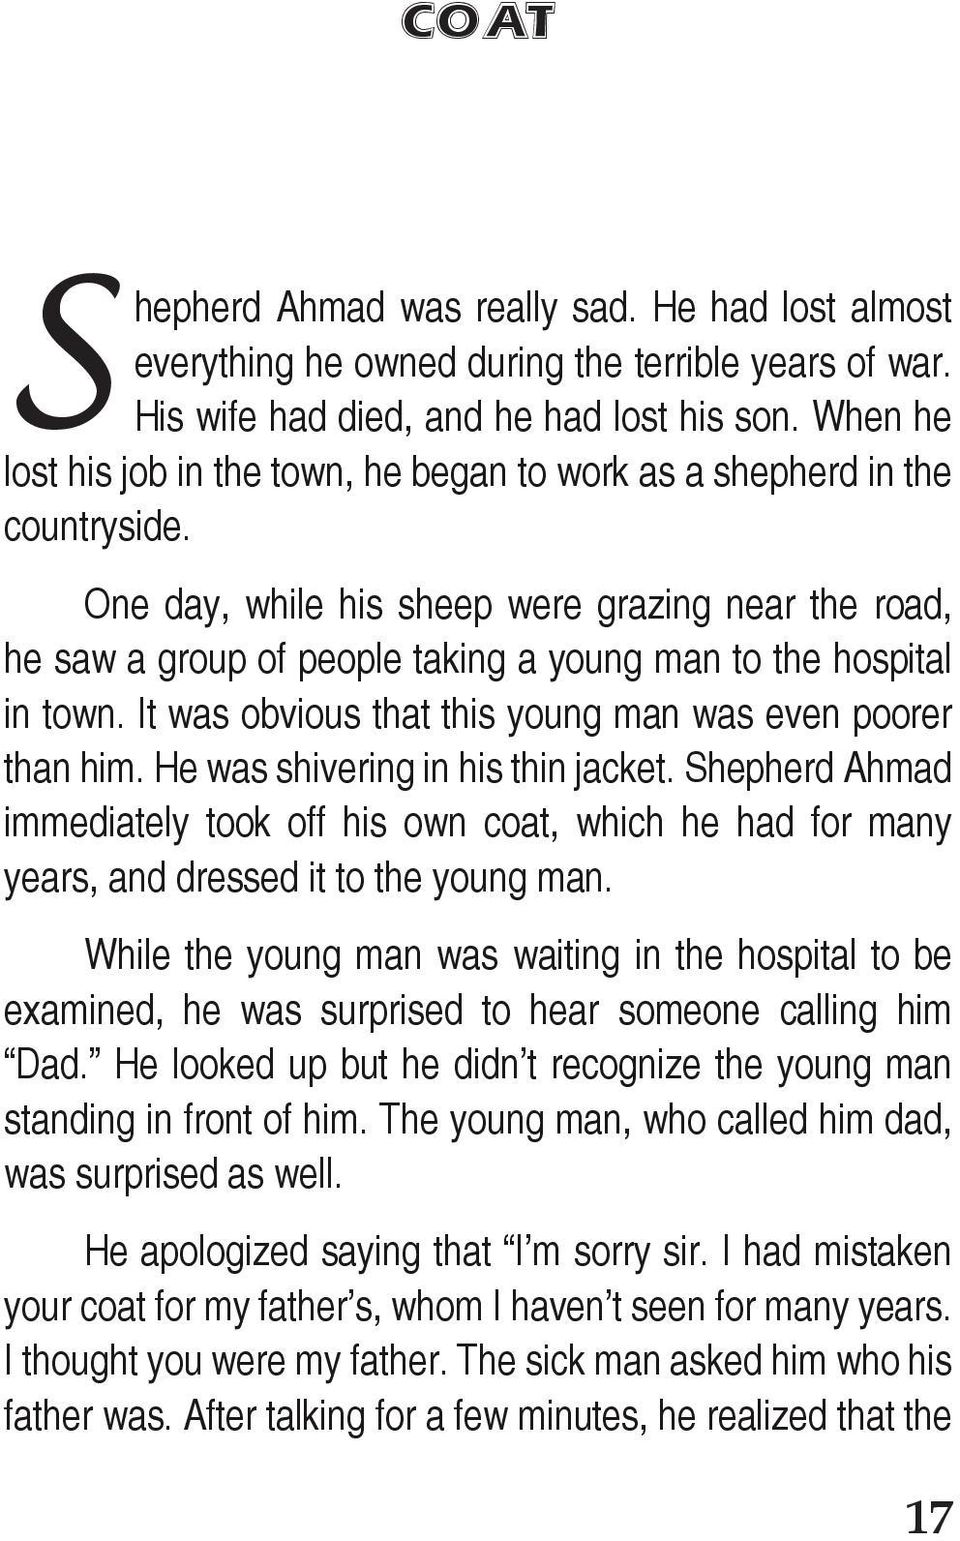 One day, while his sheep were grazing near the road, he saw a group of people taking a young man to the hospital in town. It was obvious that this young man was even poorer than him.